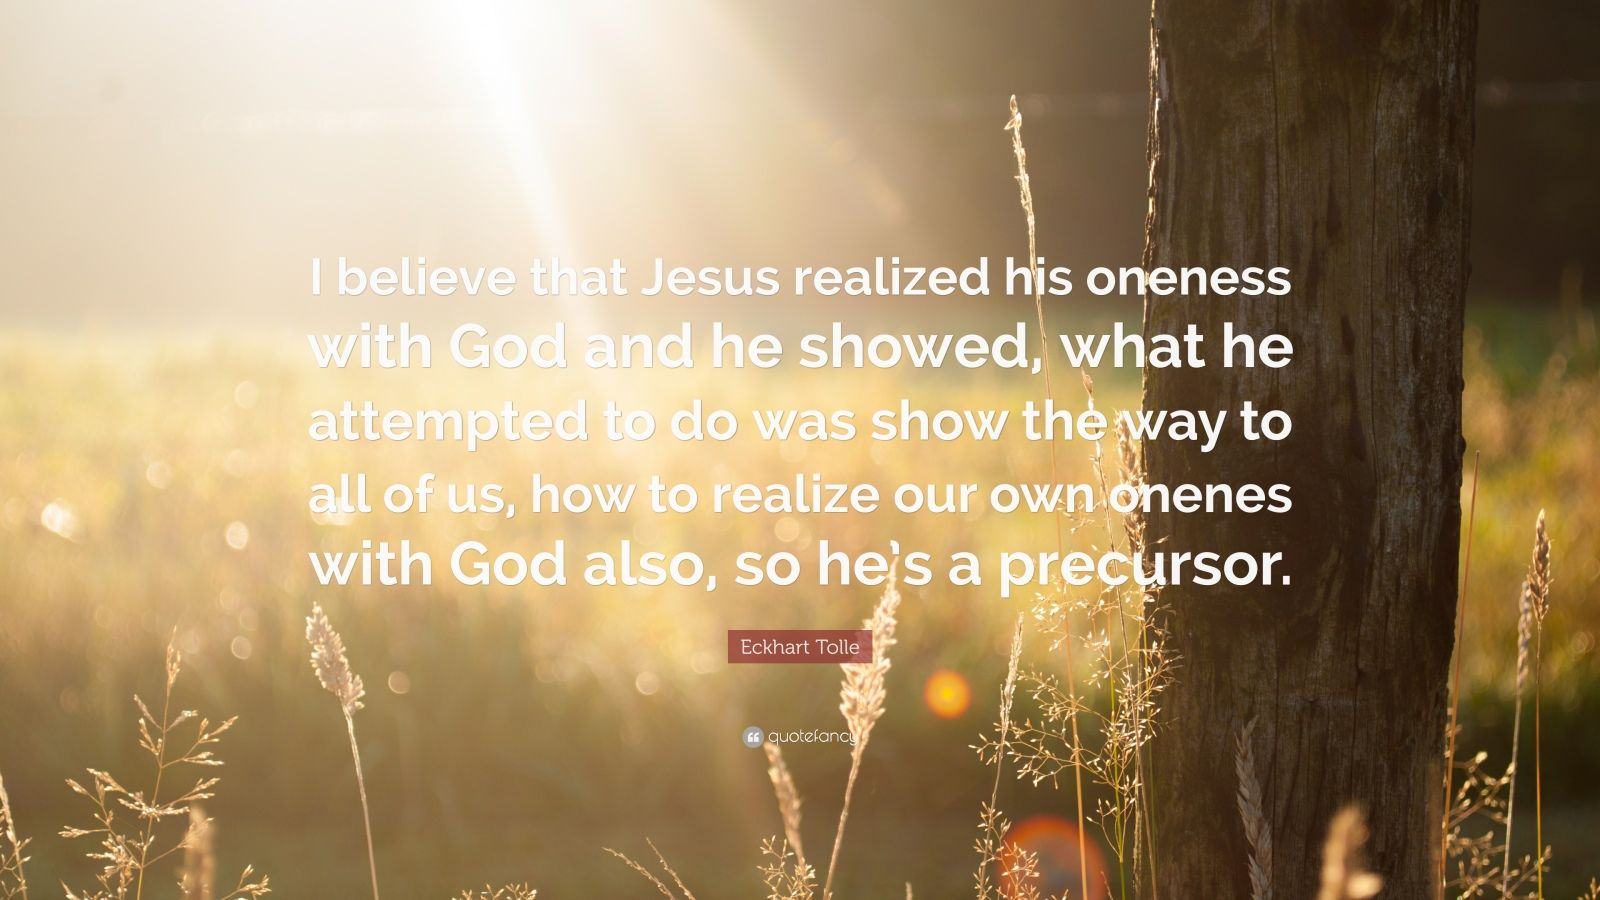 """Eckhart Tolle Quote: """"I believe that Jesus realized his oneness with God and he showed, what he attempted to do was show the way to all of us, how to realize our own onenes with God also, so he's a precursor."""""""